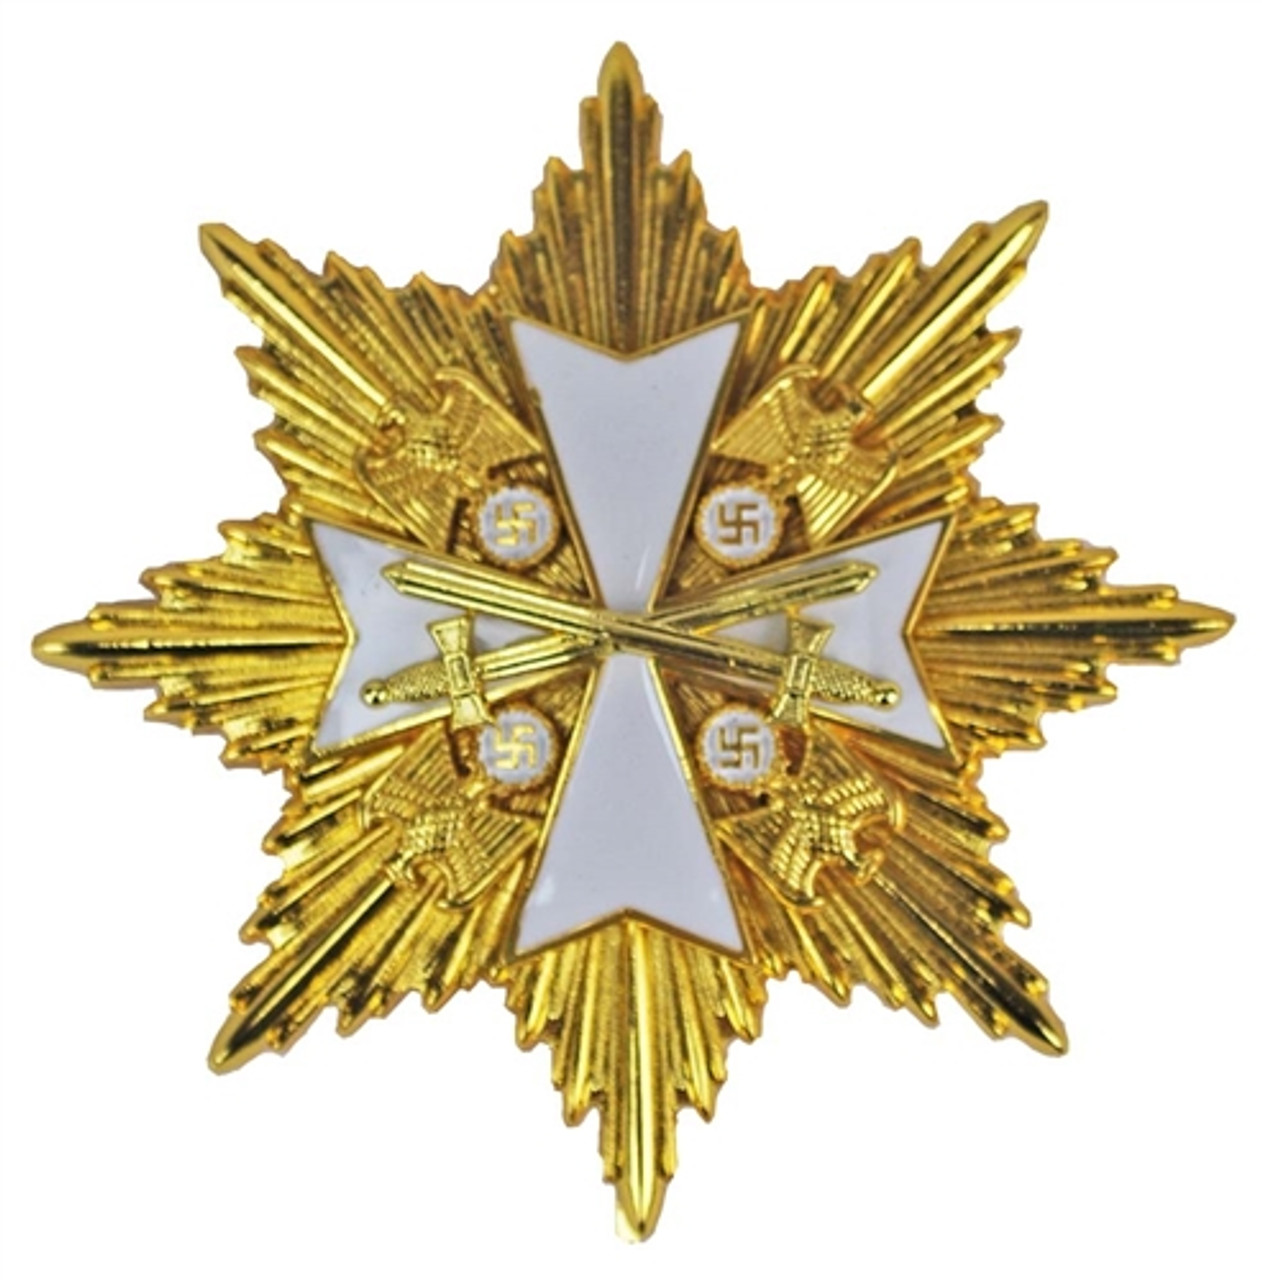 Grand Cross of the Order of the German Eagle in Gold with Star from Hessen Antique